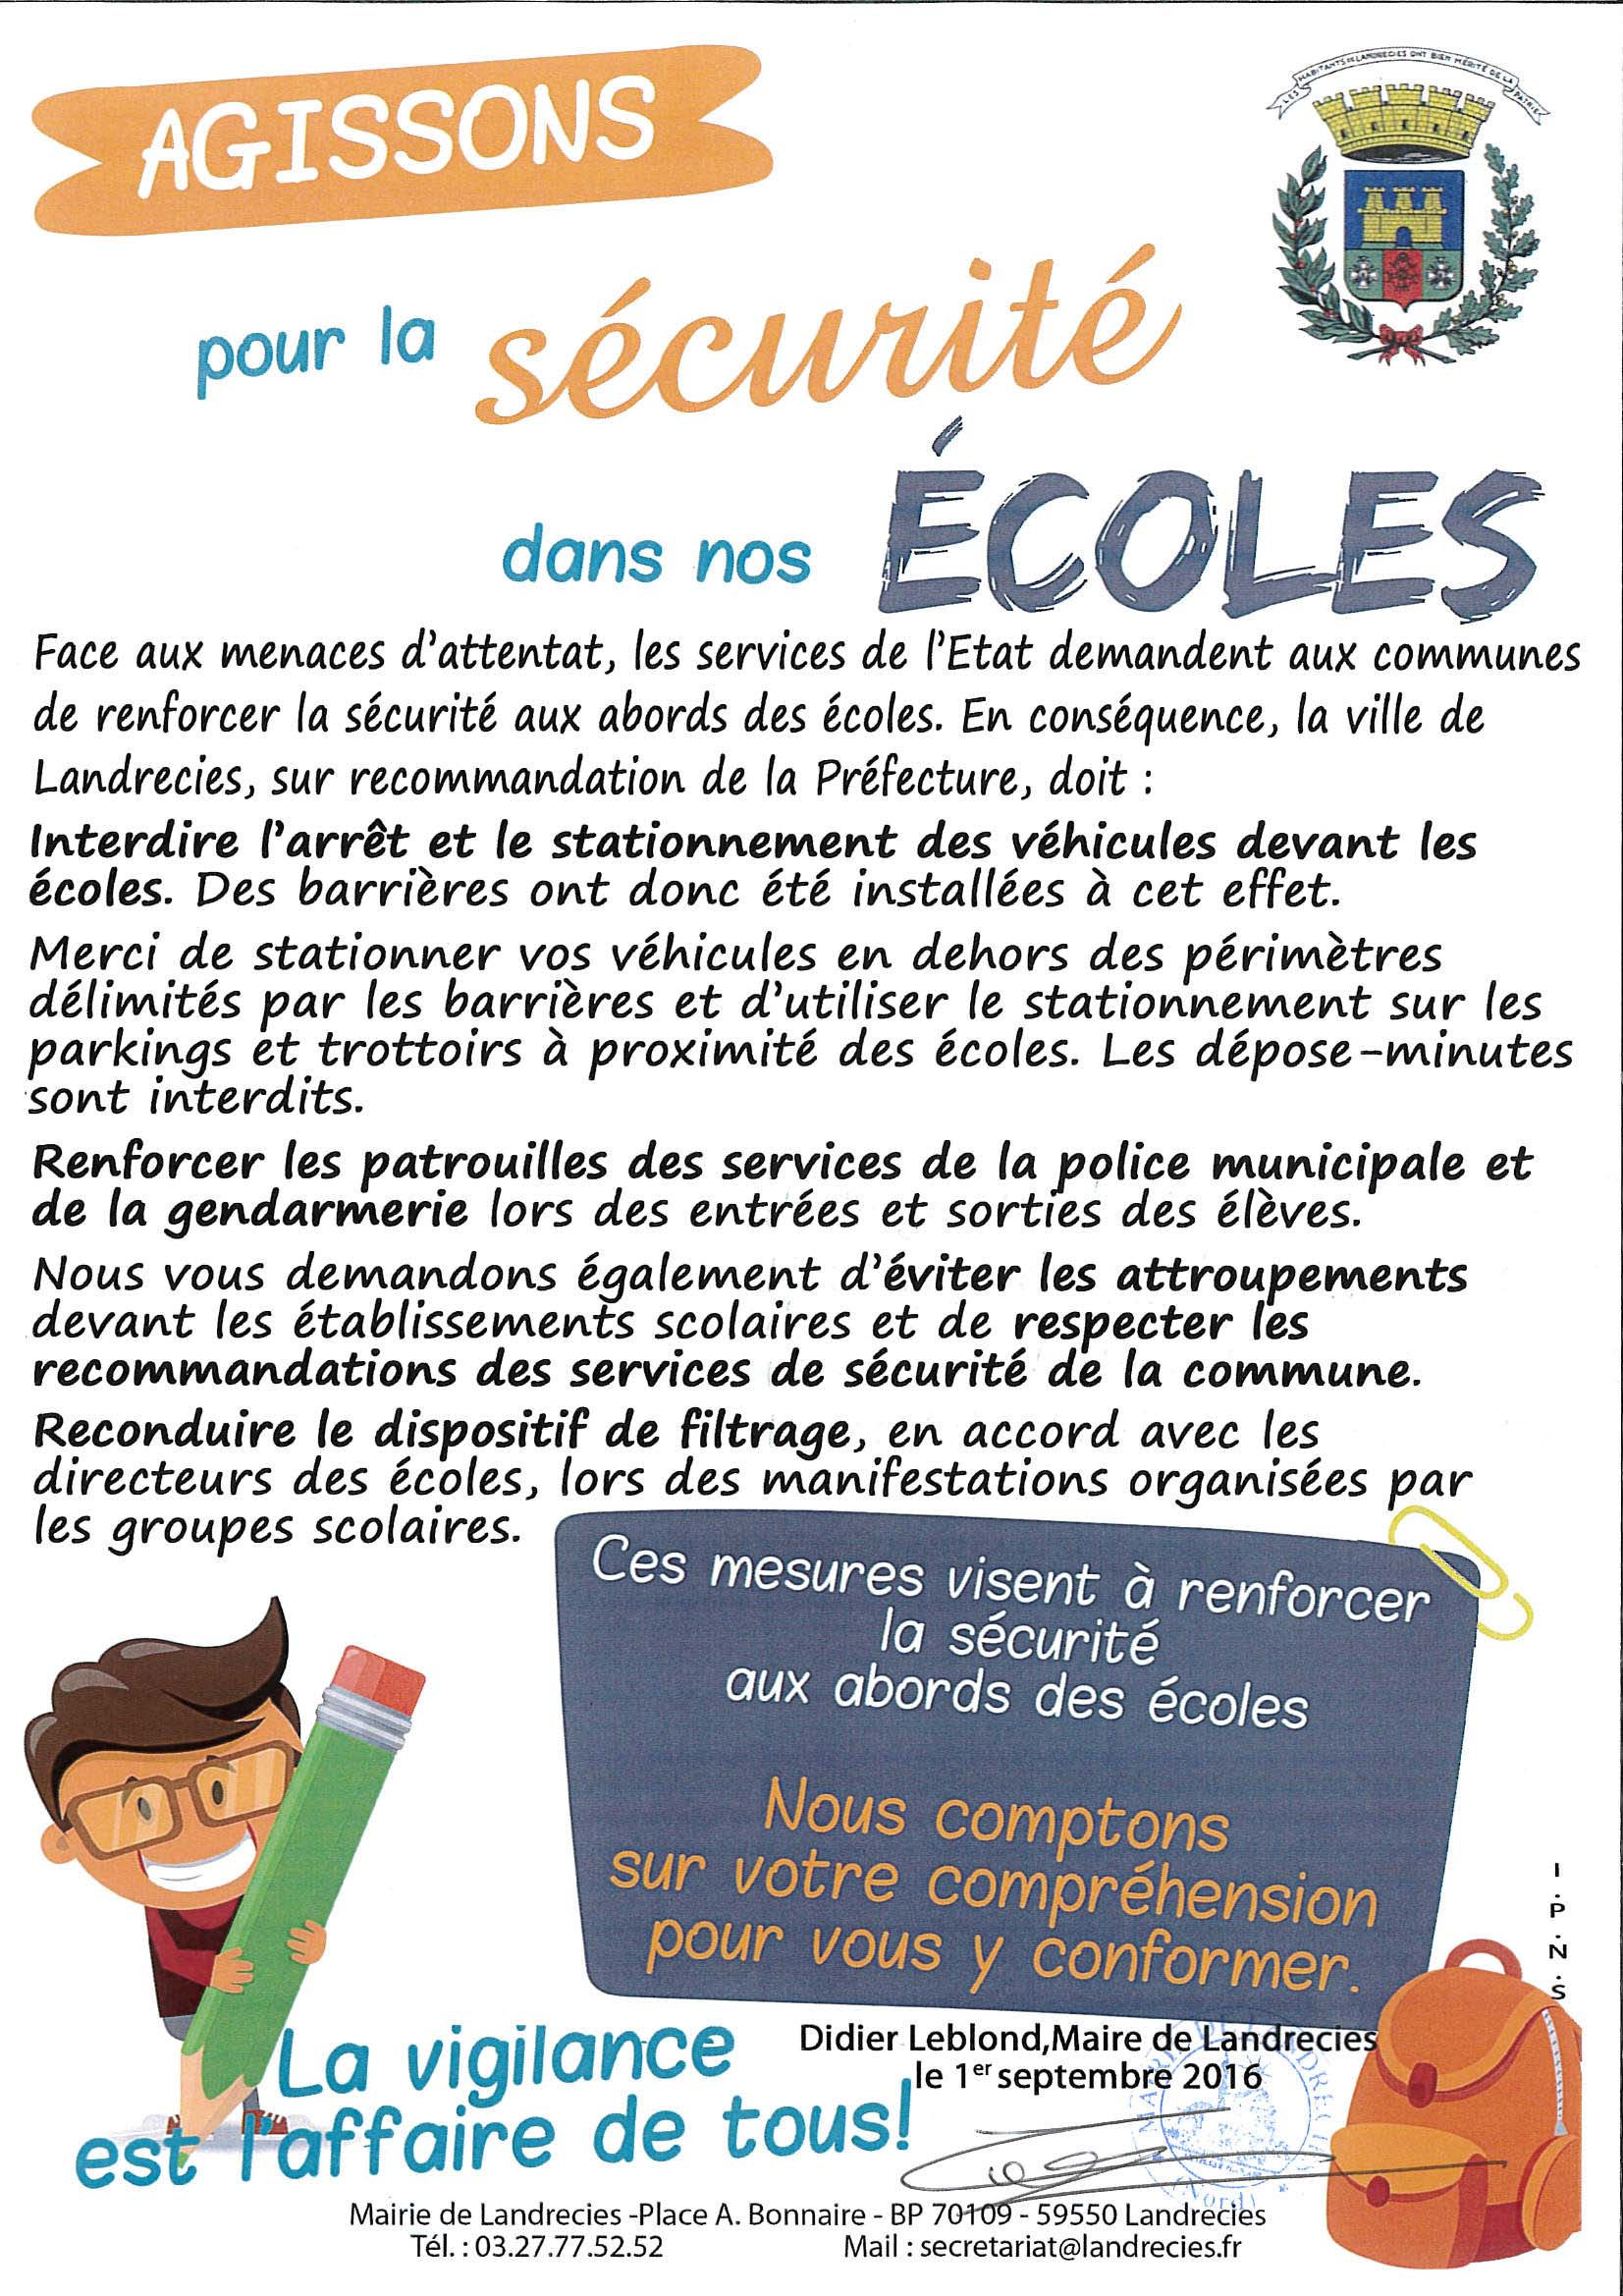 Securite des Ecoles sign